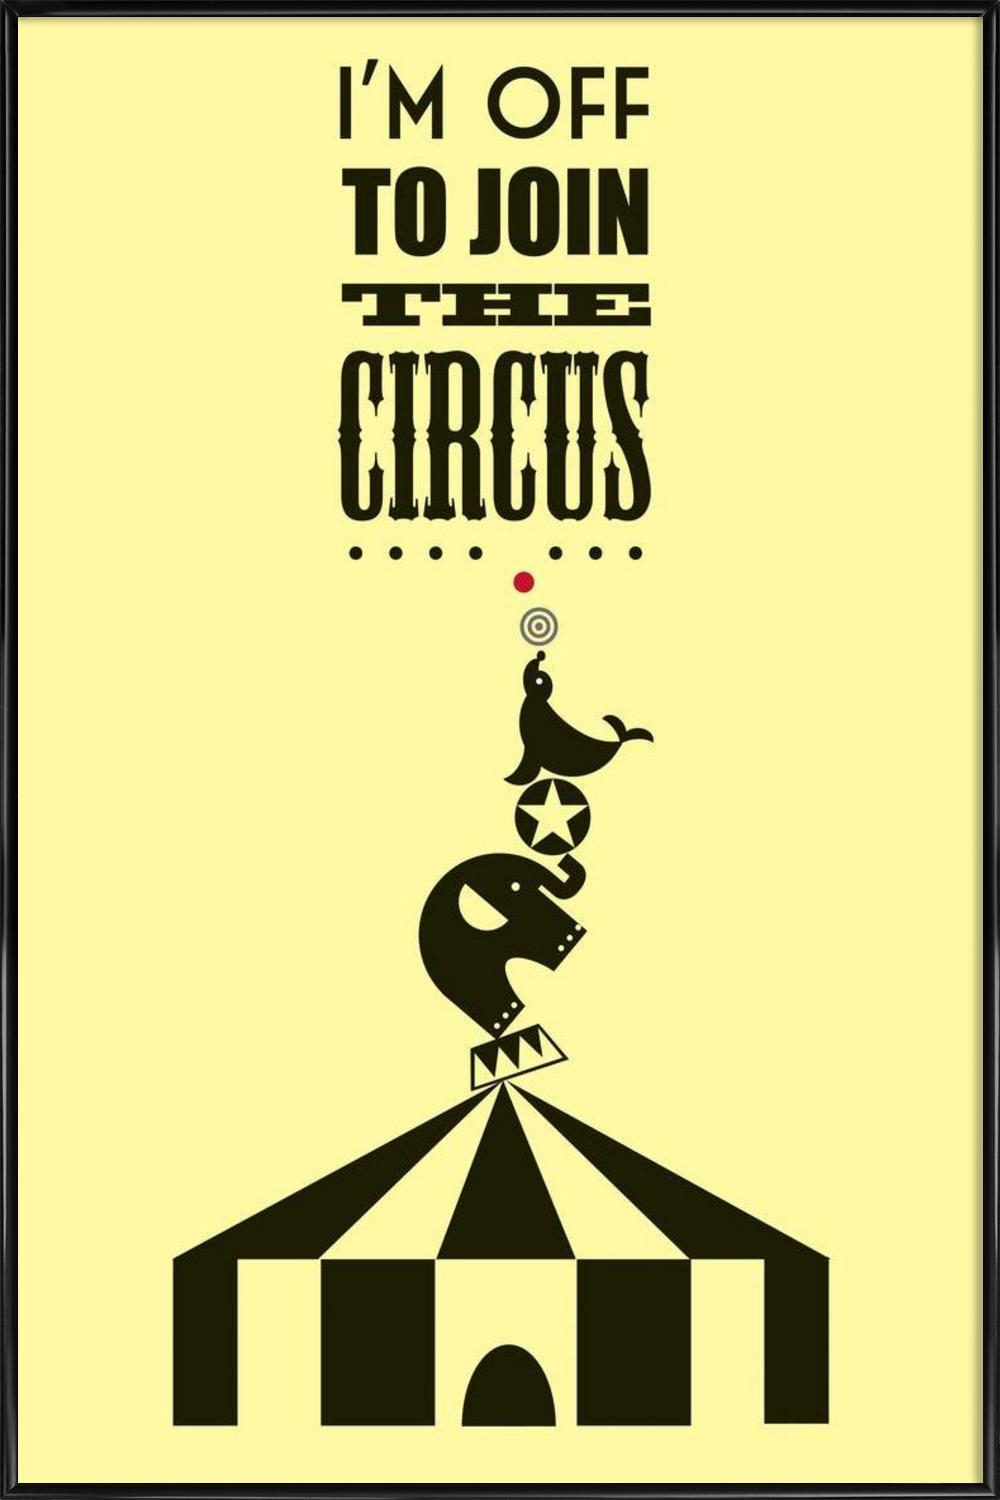 Circus as Poster in Standard Frame by Trabolt Design | JUNIQE